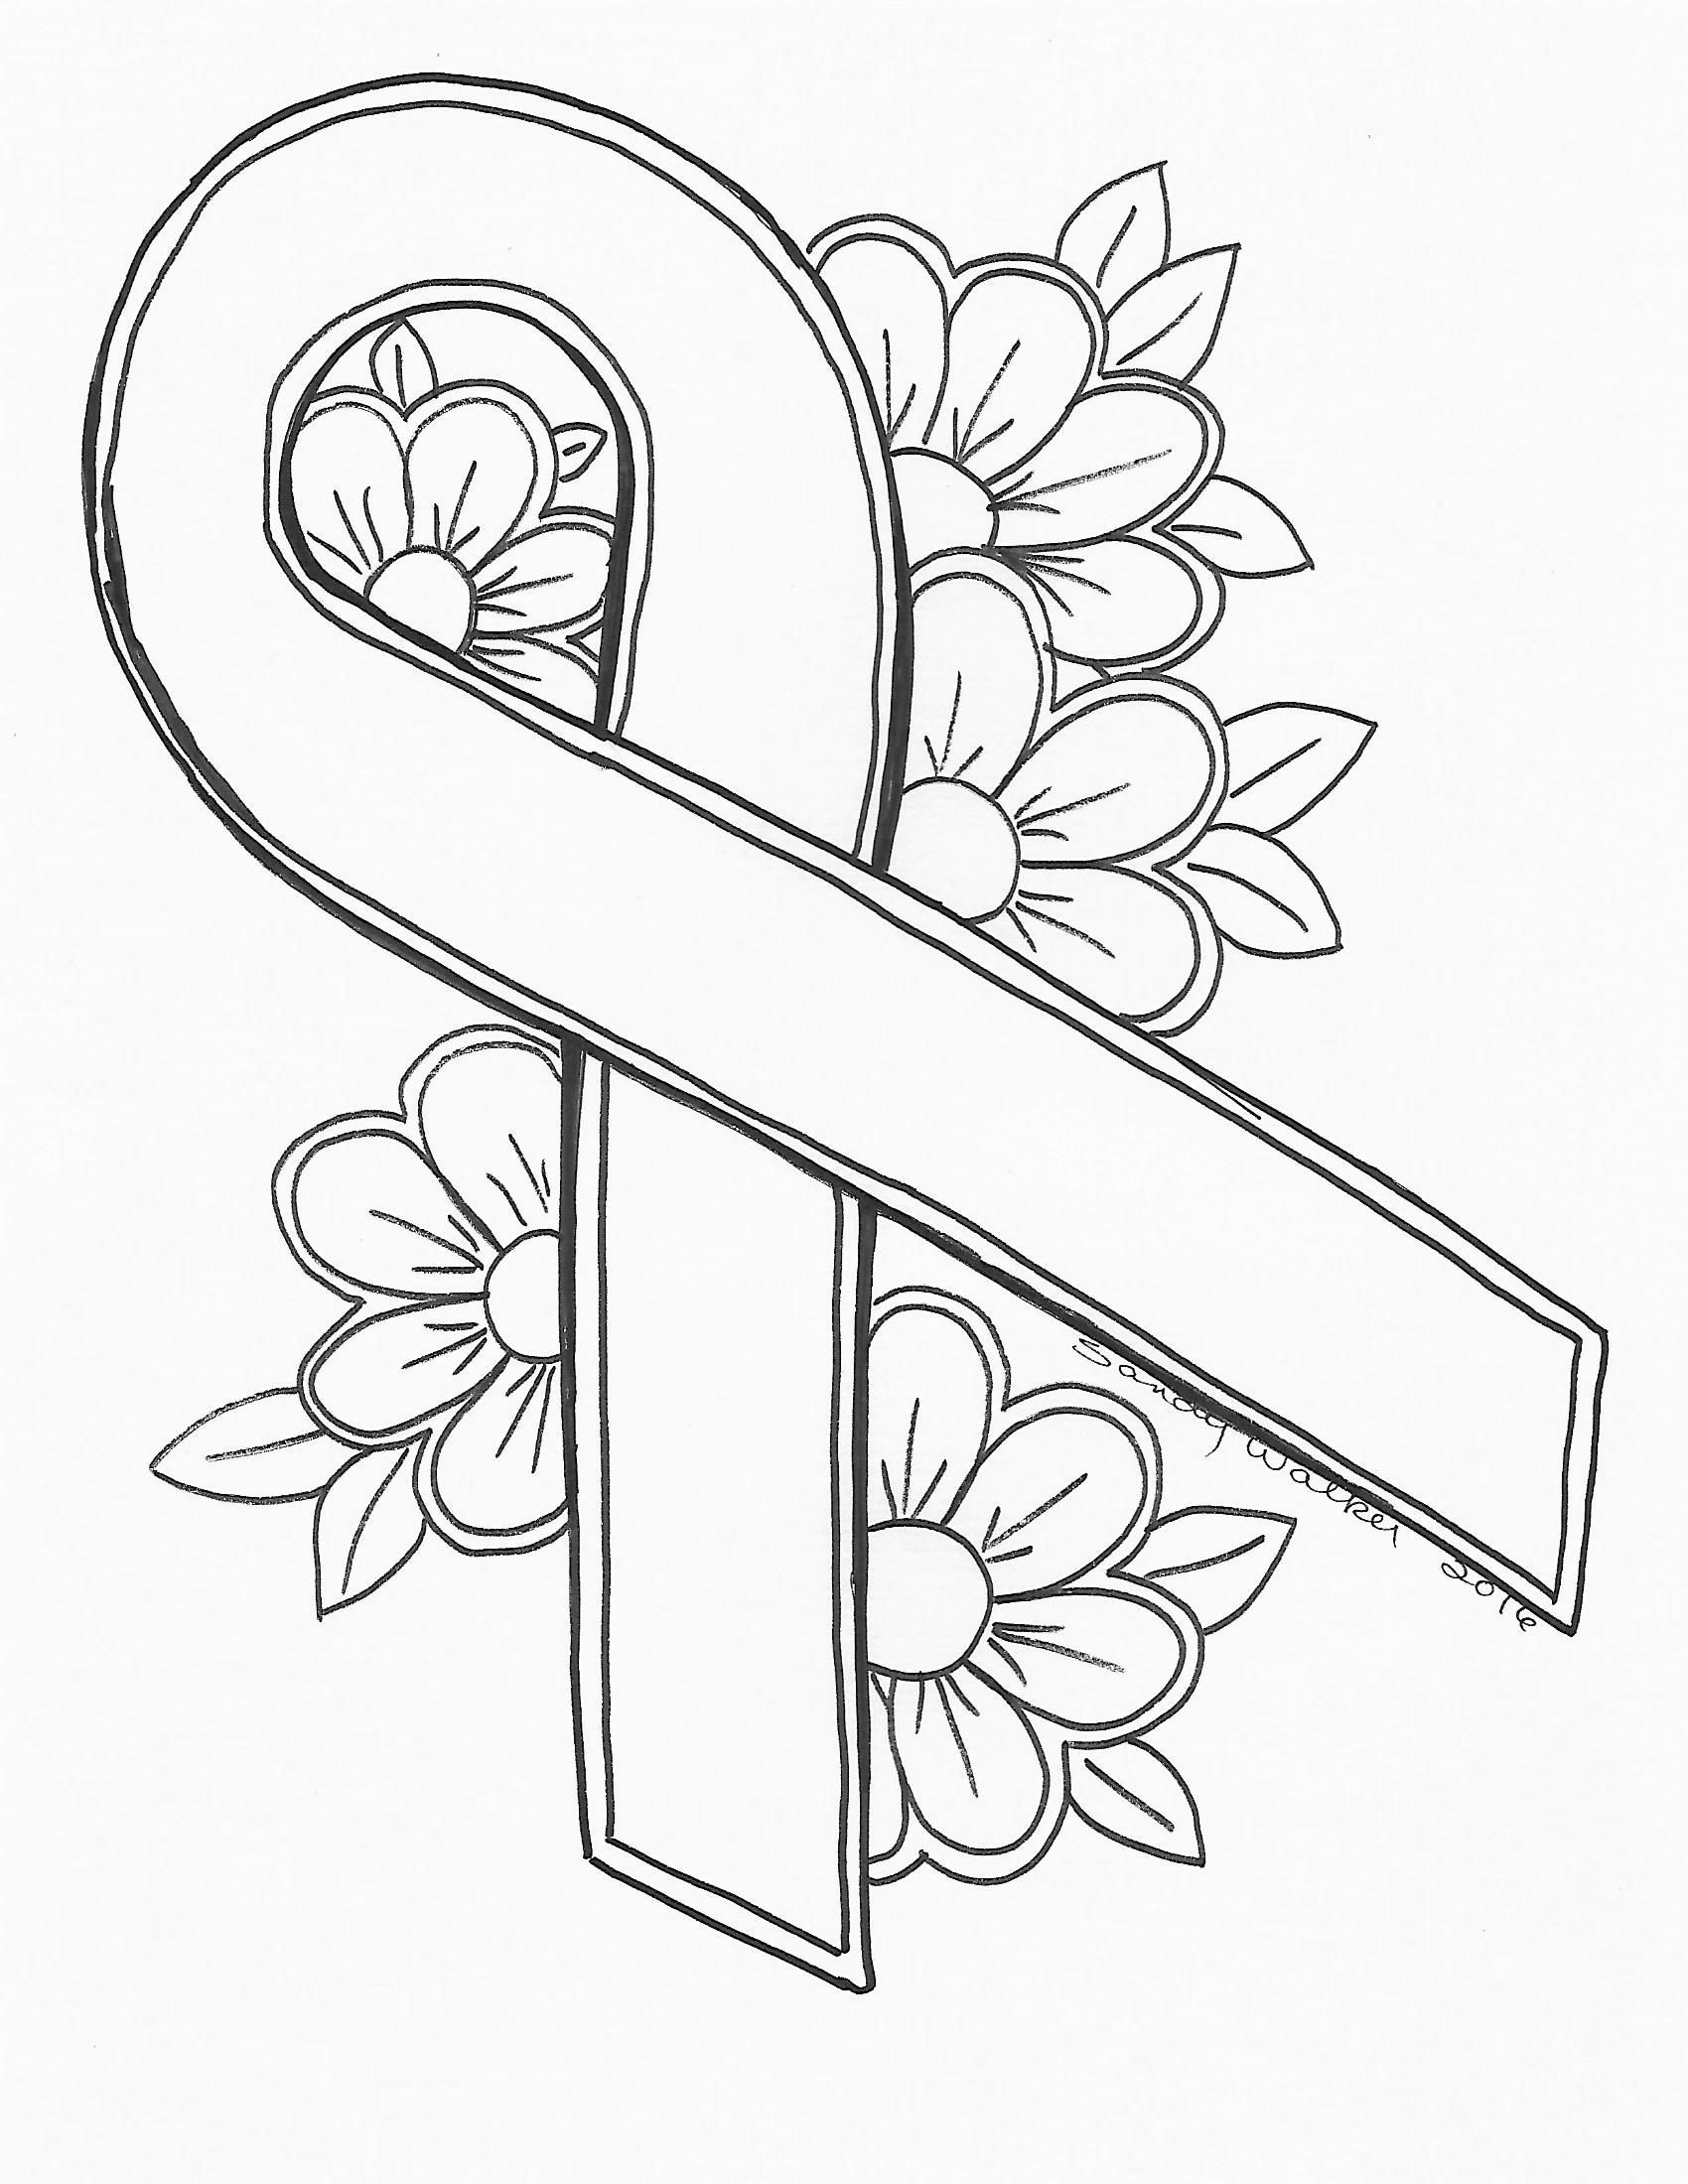 An Original By Sandra Walker Ribbon For Cancer Color It Any Color You Choose